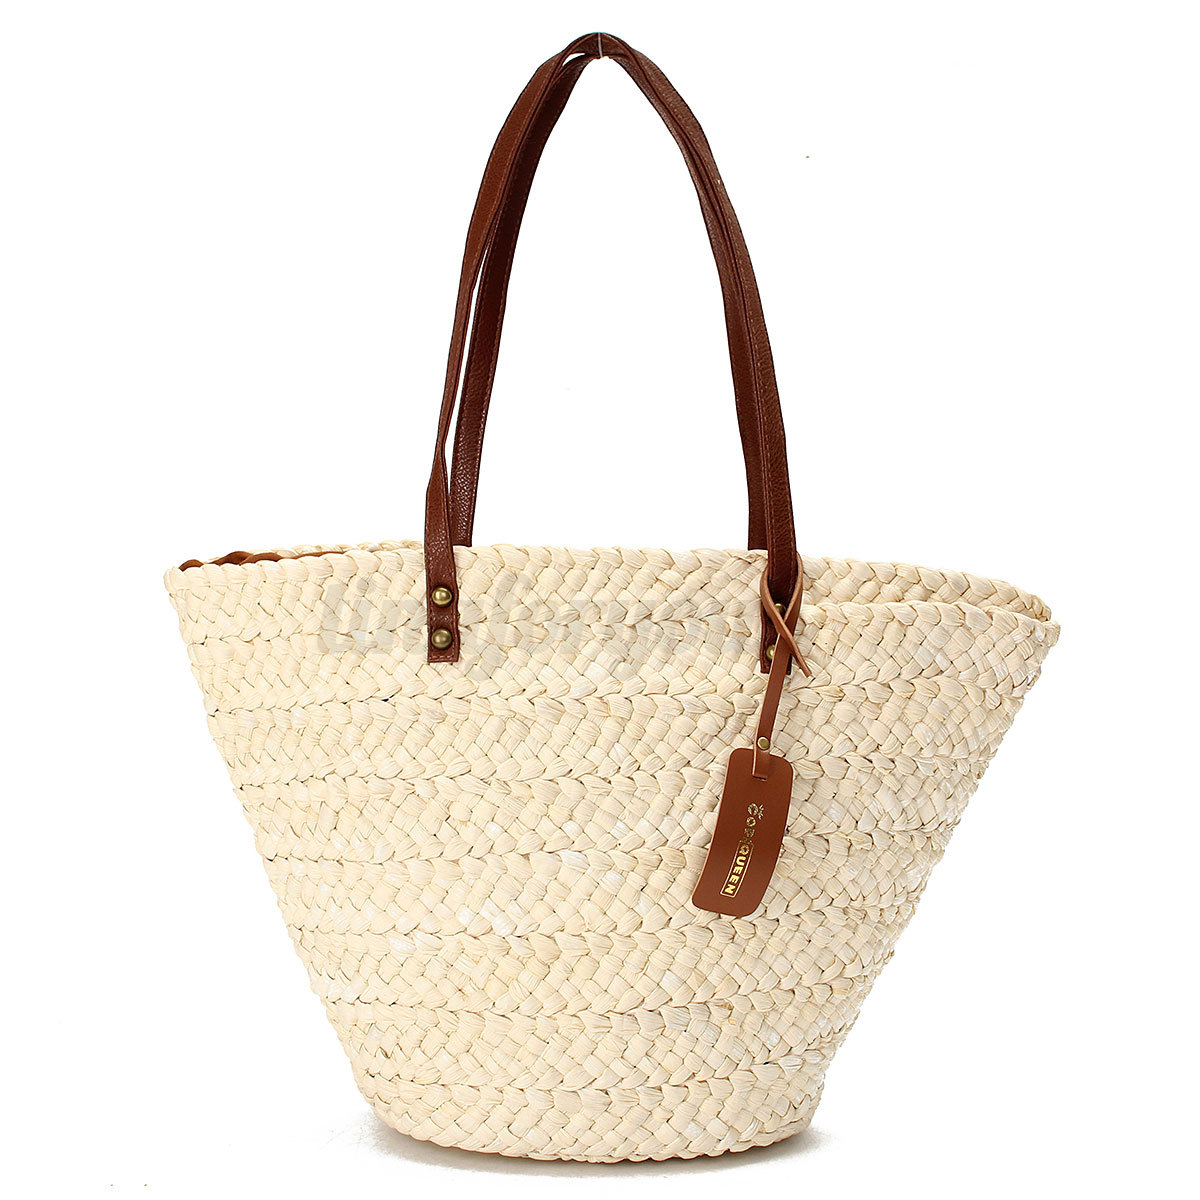 Women's White Straw Beach Bag Lady Shoulder Bag Tote Outdoor ...